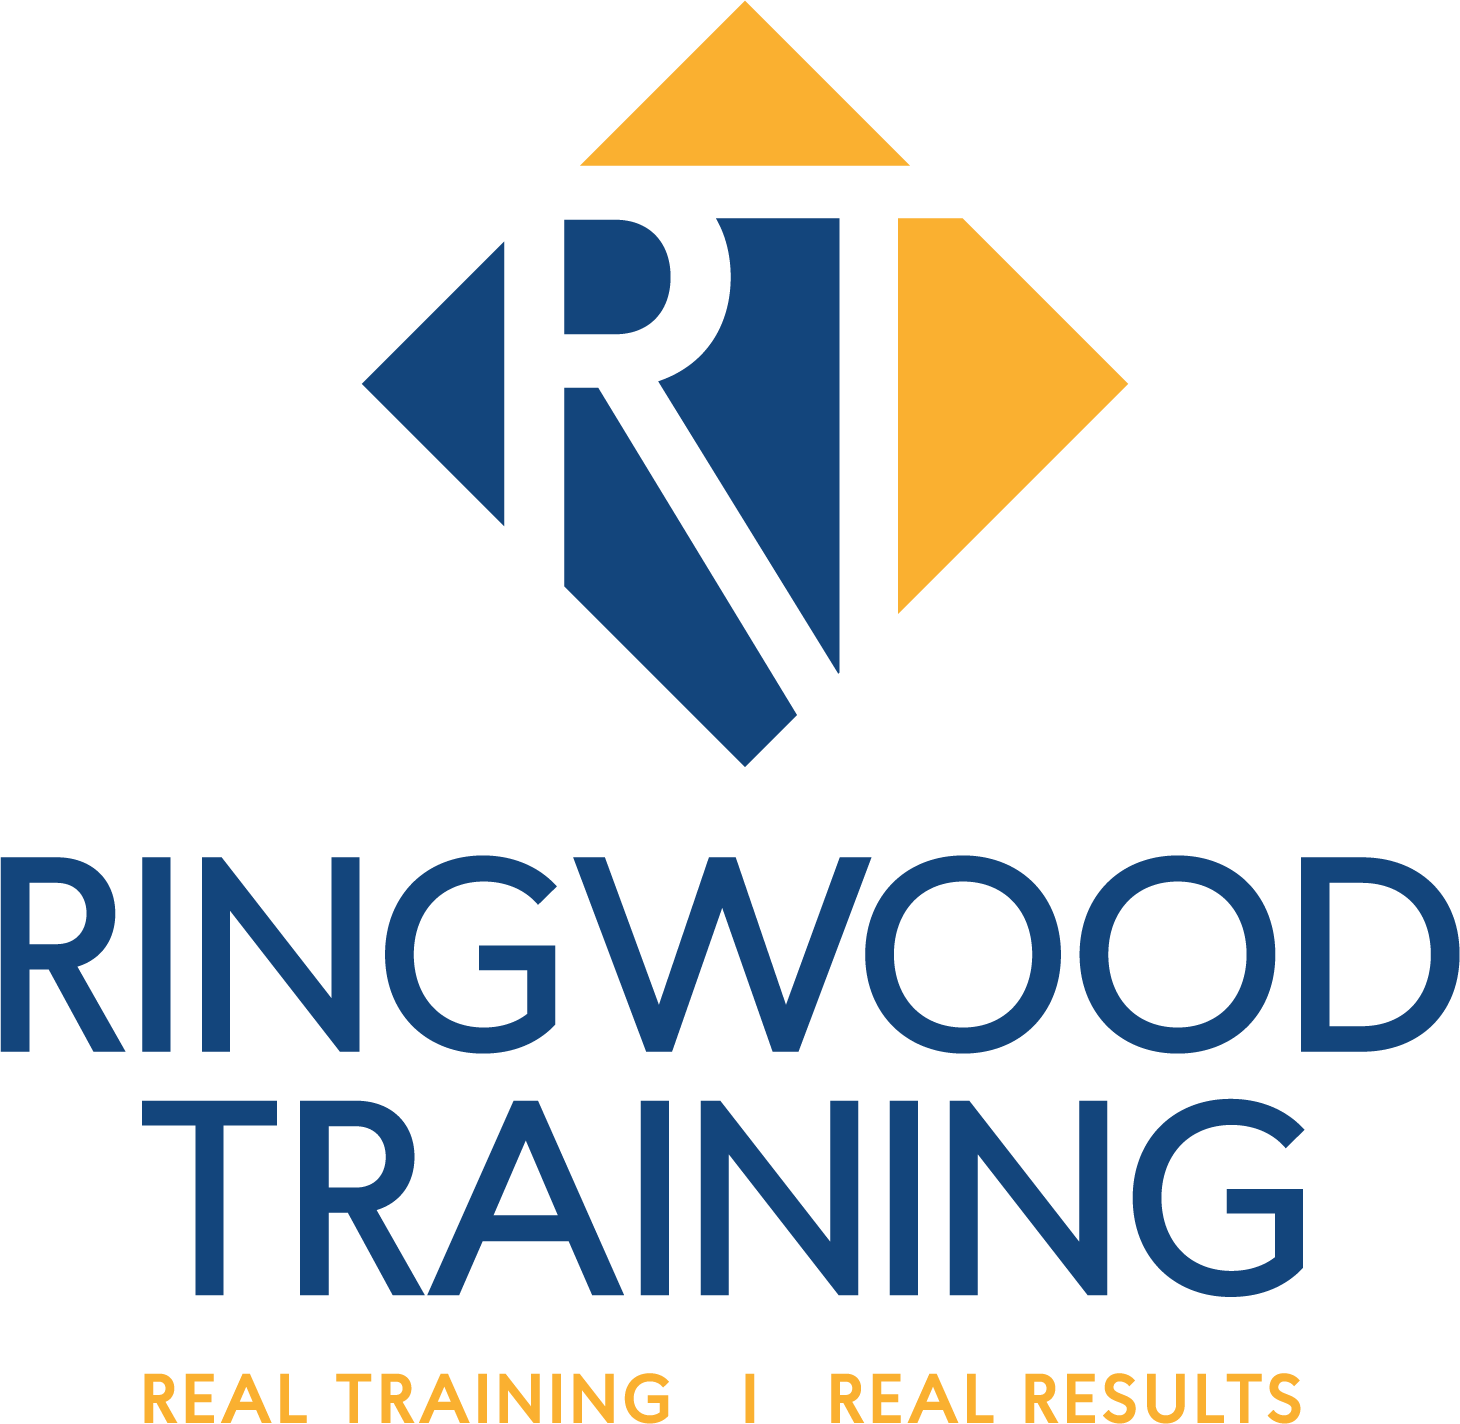 About us - Ringwood Training - RT